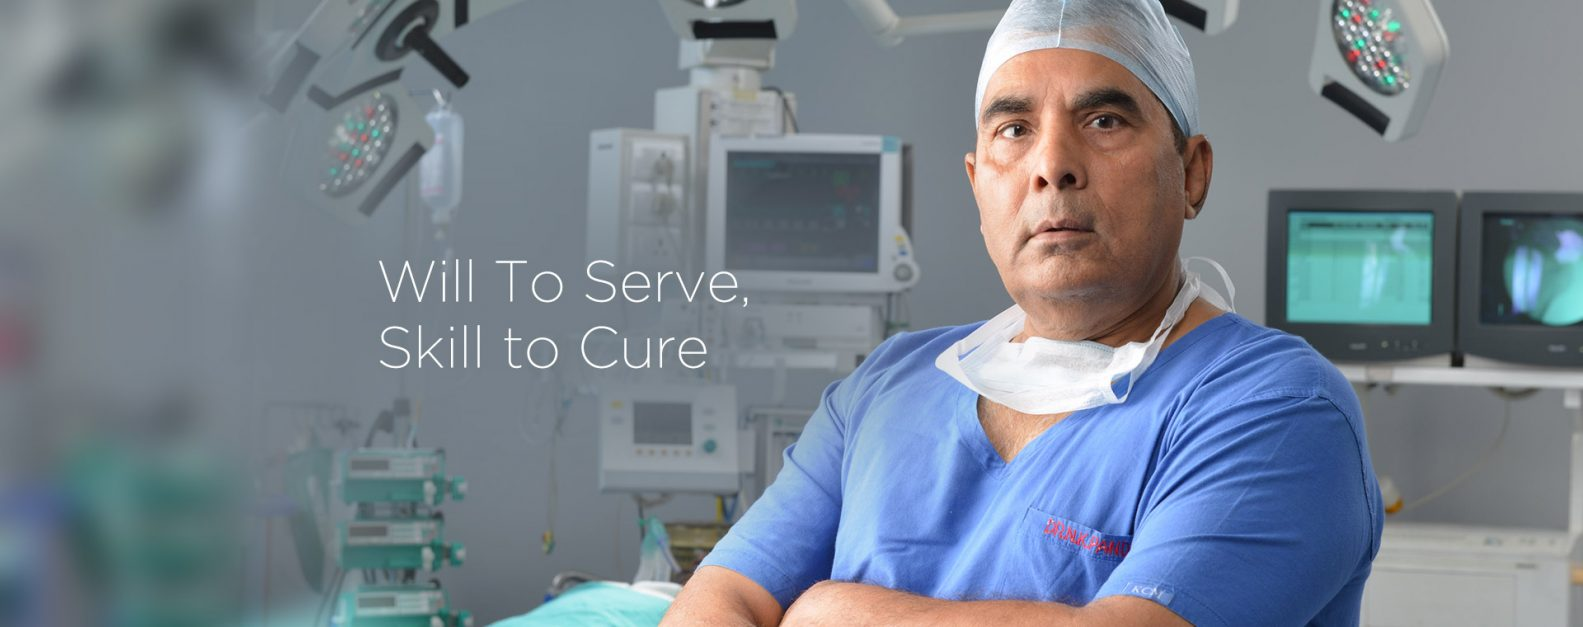 Top Superspecialty Hospital Delhi NCR